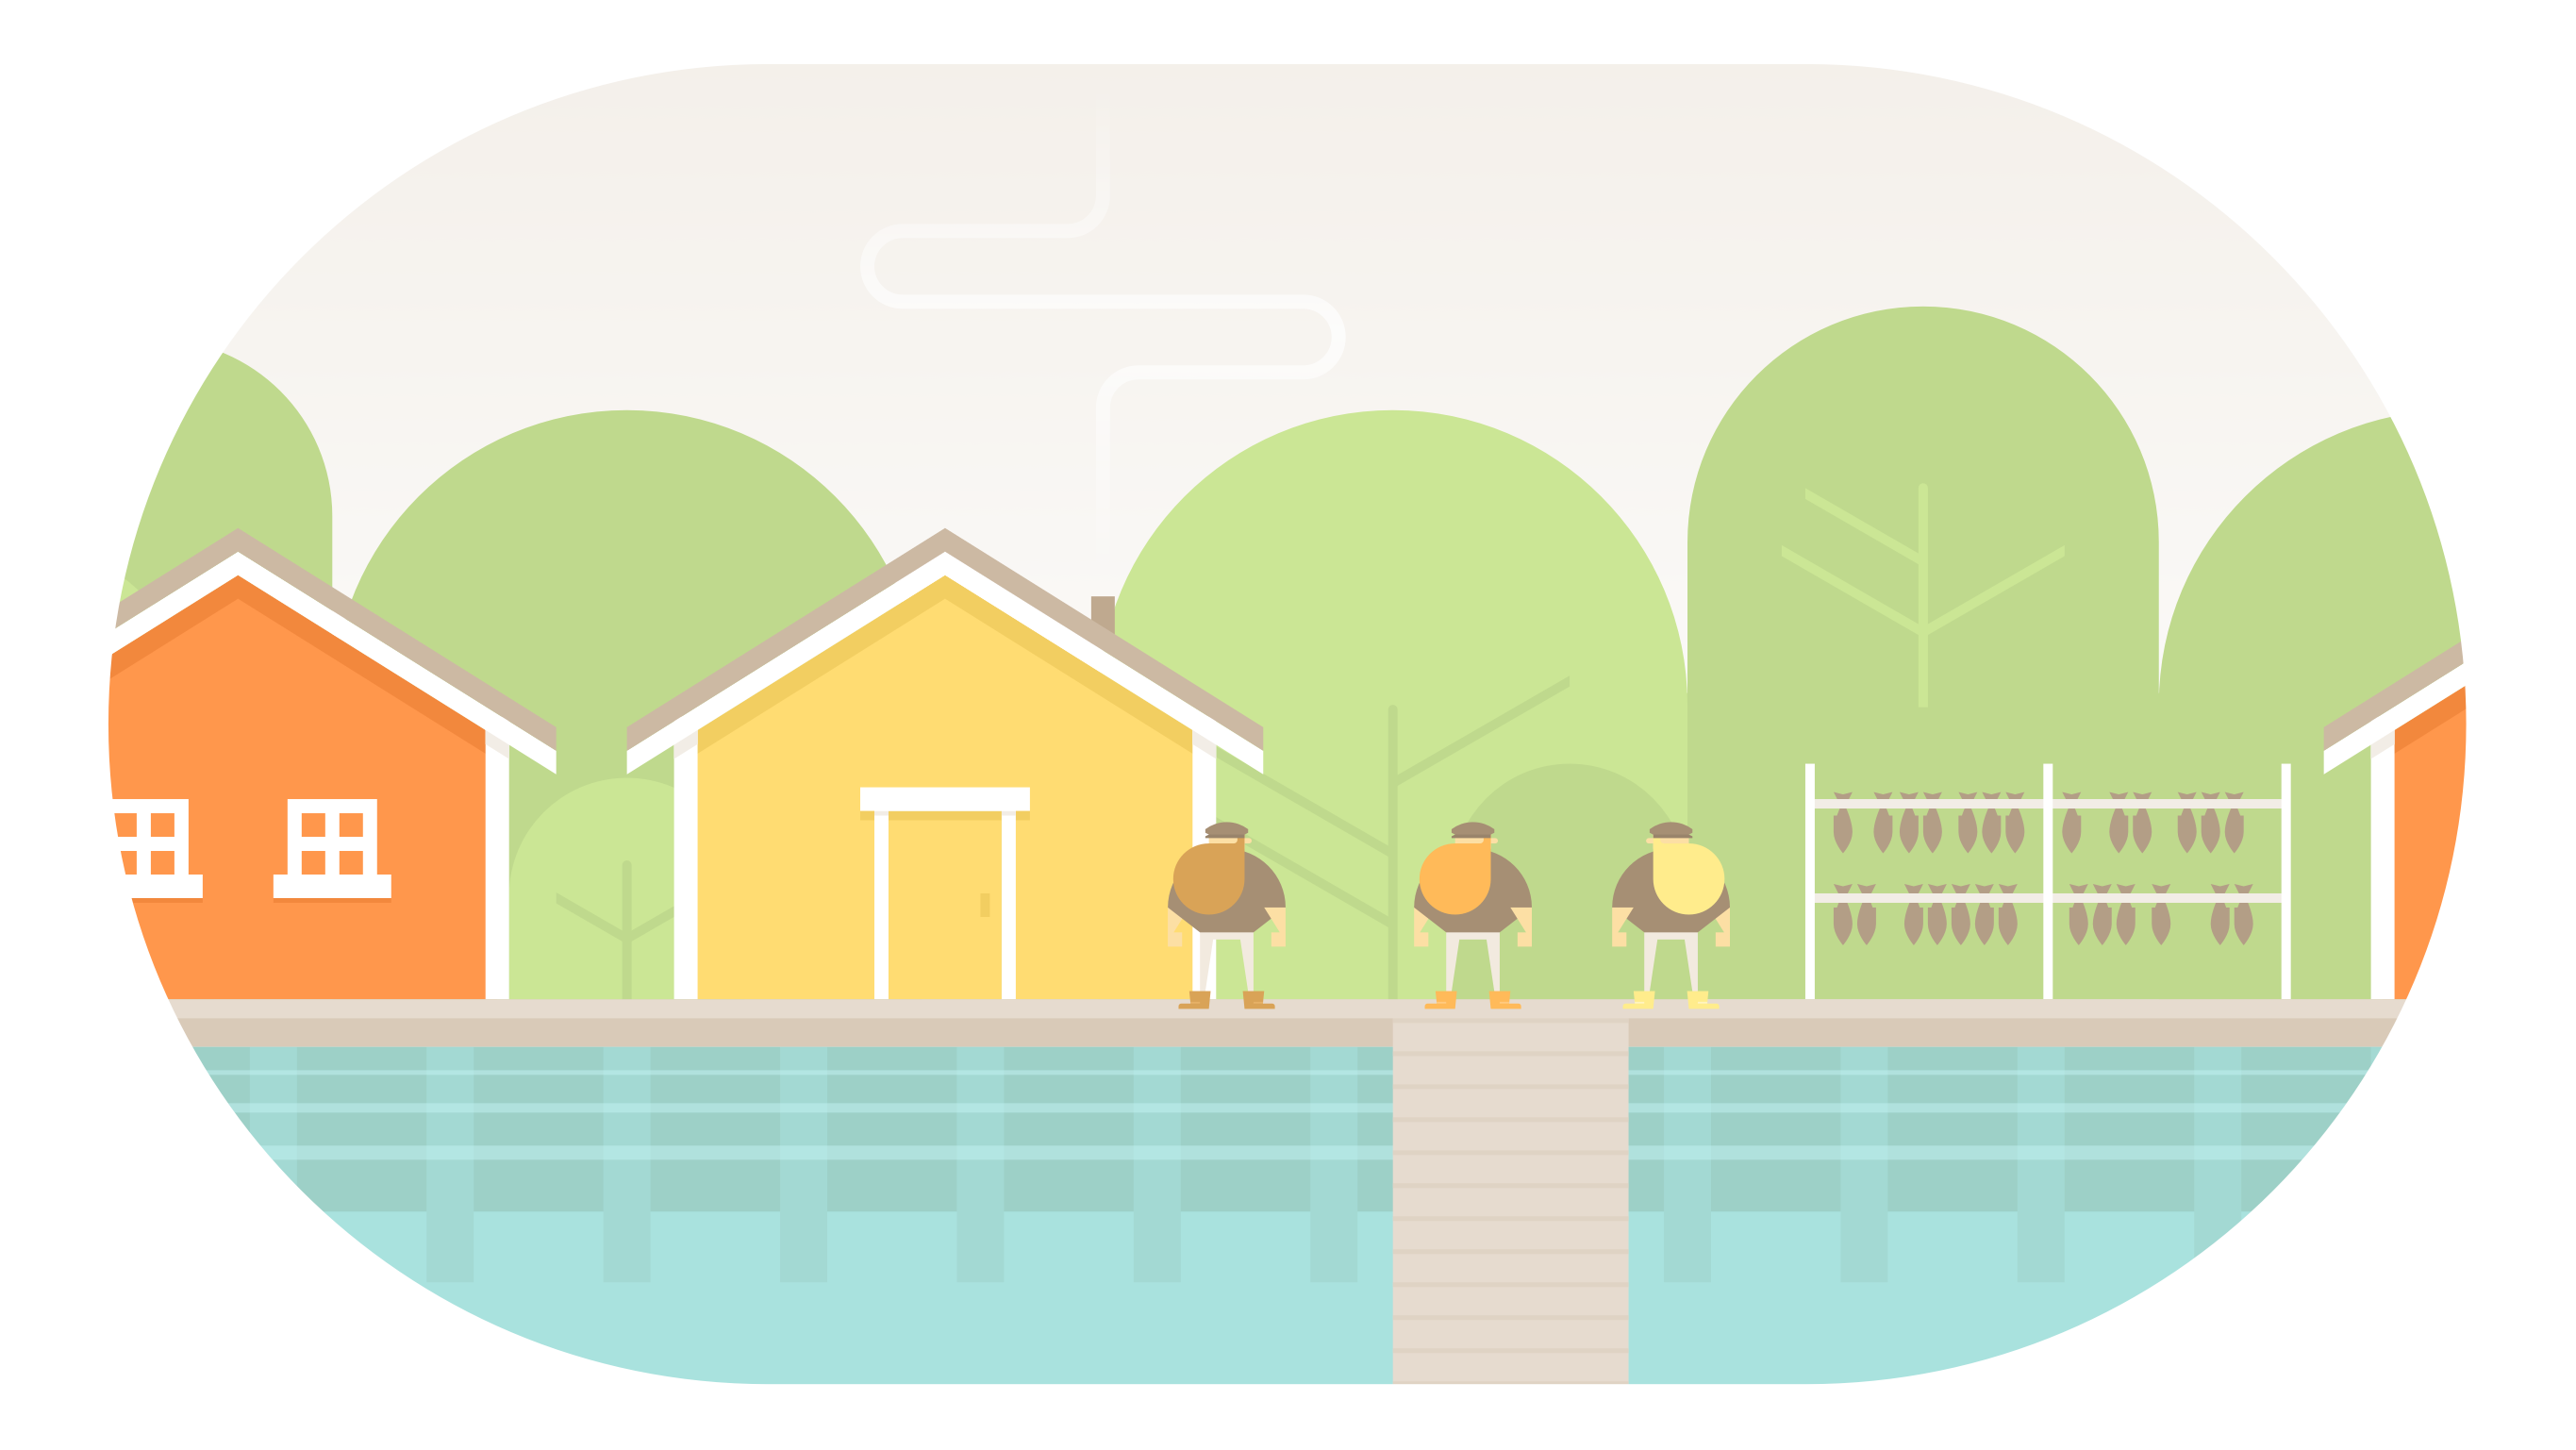 Quiet Adventure Game Burly Men At Sea's artwork never fails to impress